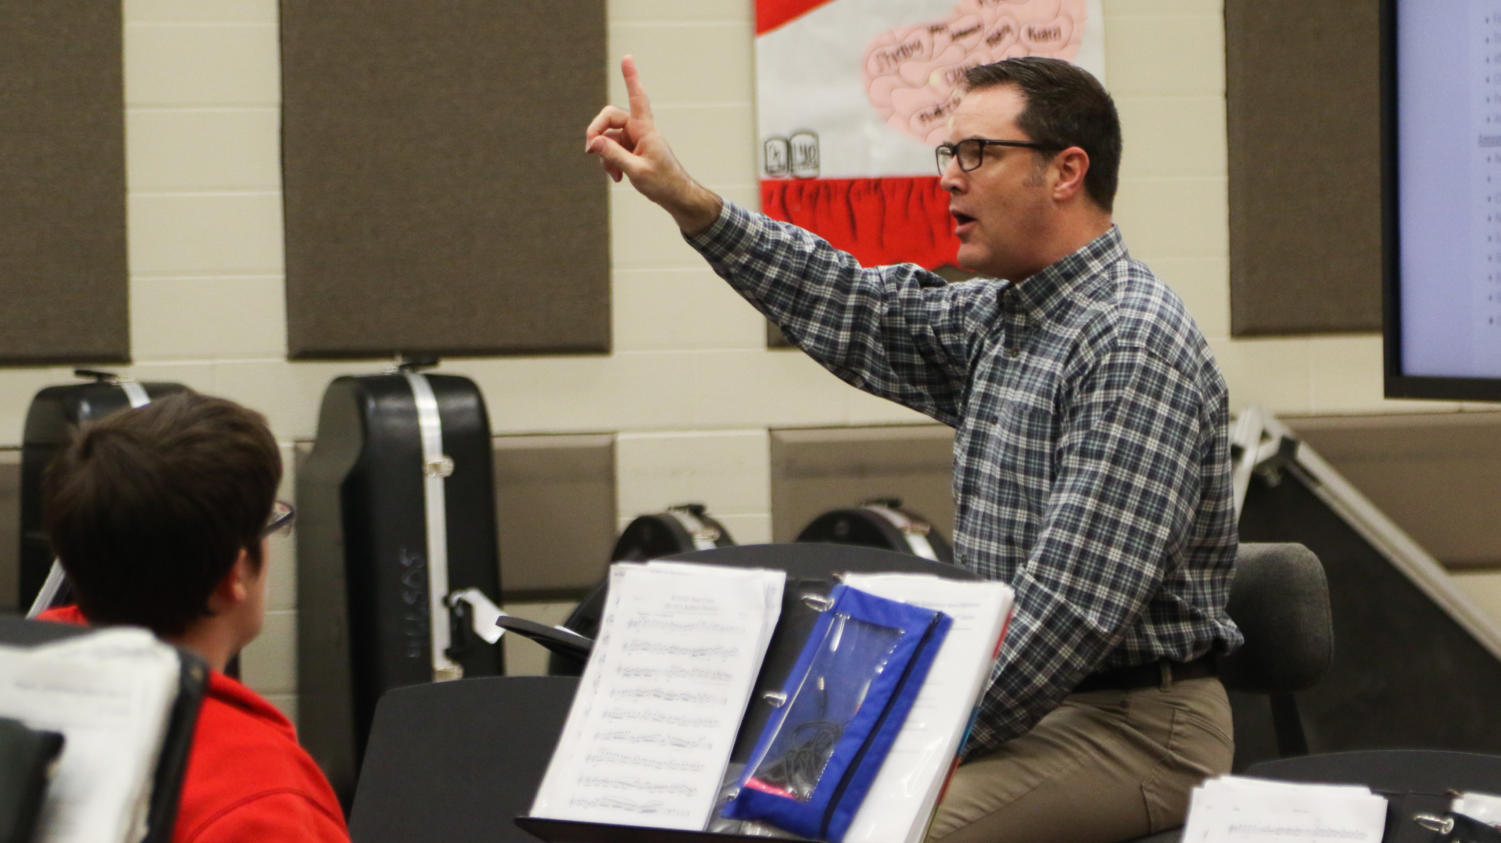 Golden Eagle, Asa Burk, directs the Symphonic Band in preparation for the Spring Concert on April 29, 2018 in Argyle, Tx. (Katie Ray / The Talon News)